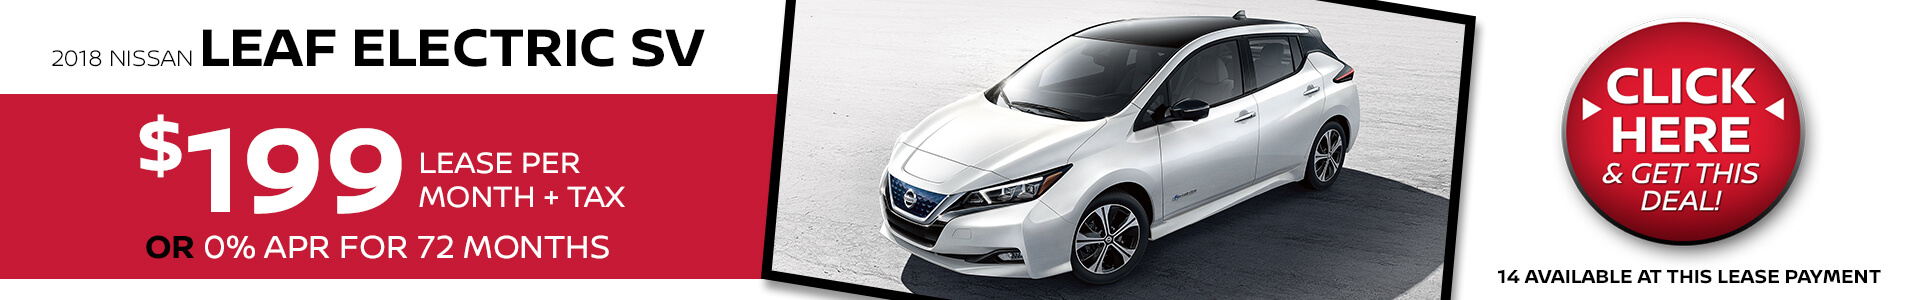 Nissan LEAF $199 Lease